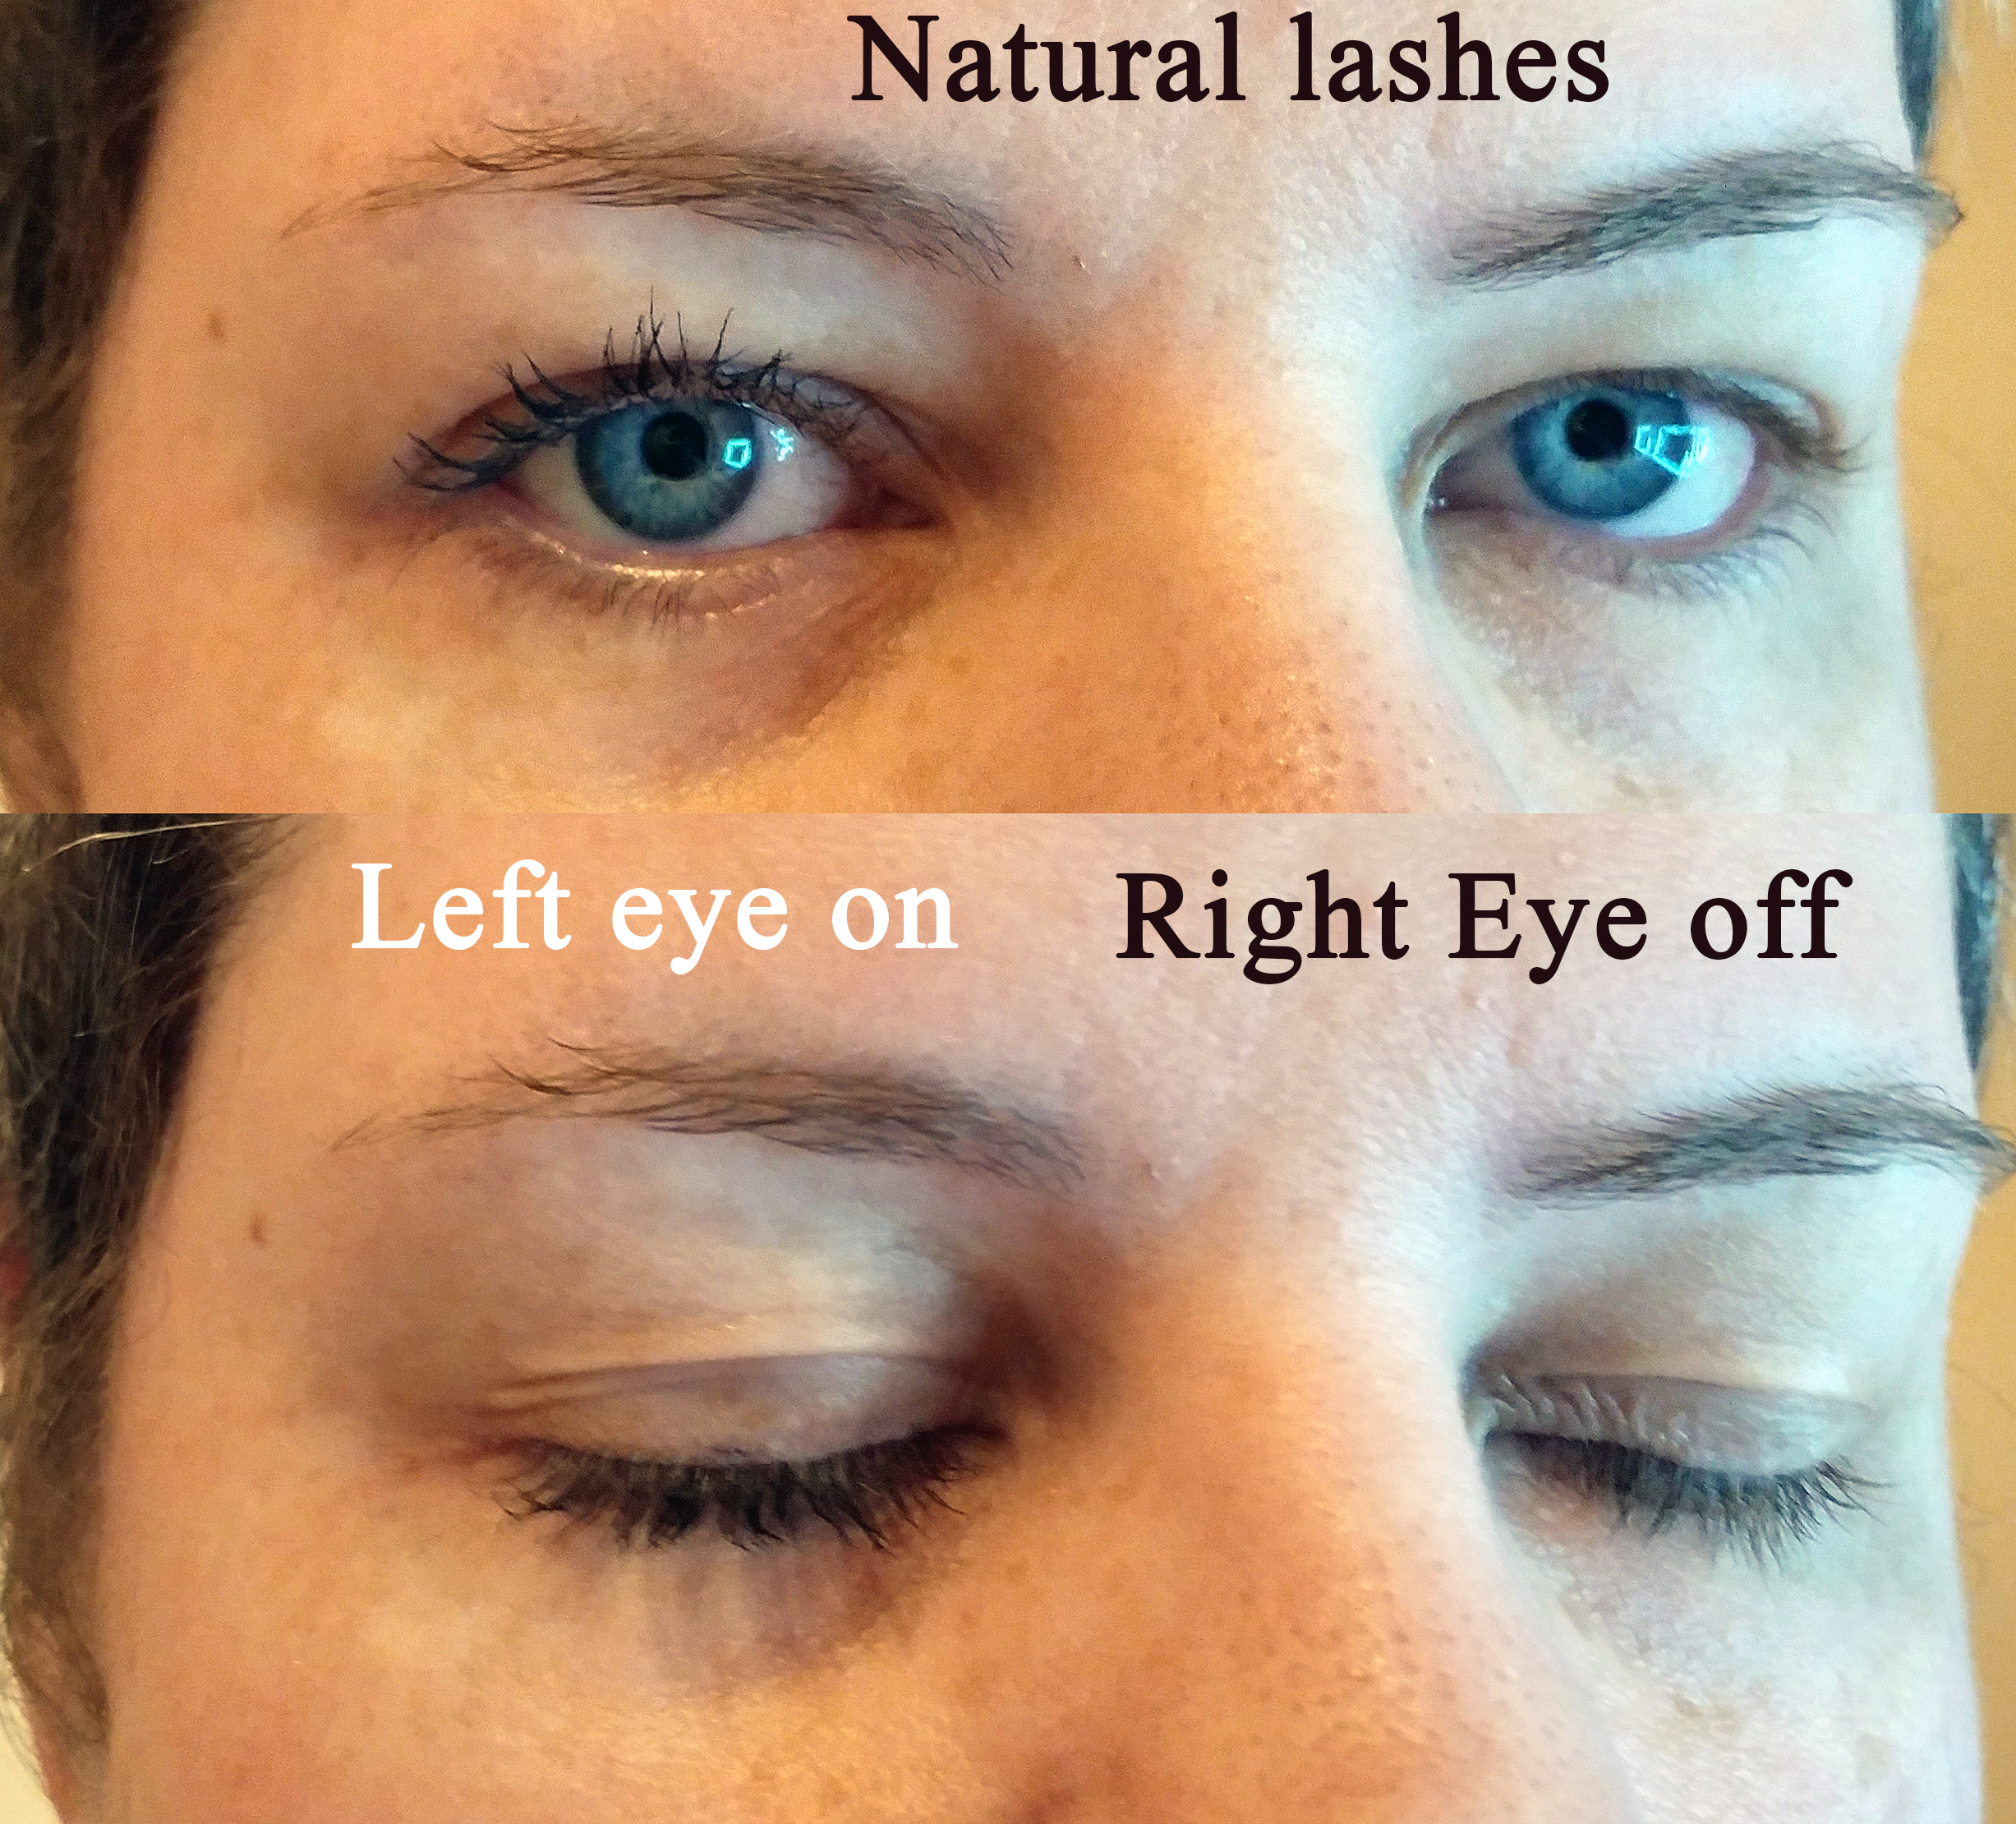 Cosmetics Nyx The Hype Worth Mascara Reviews In Chickadvisor l1uJTc3FK5